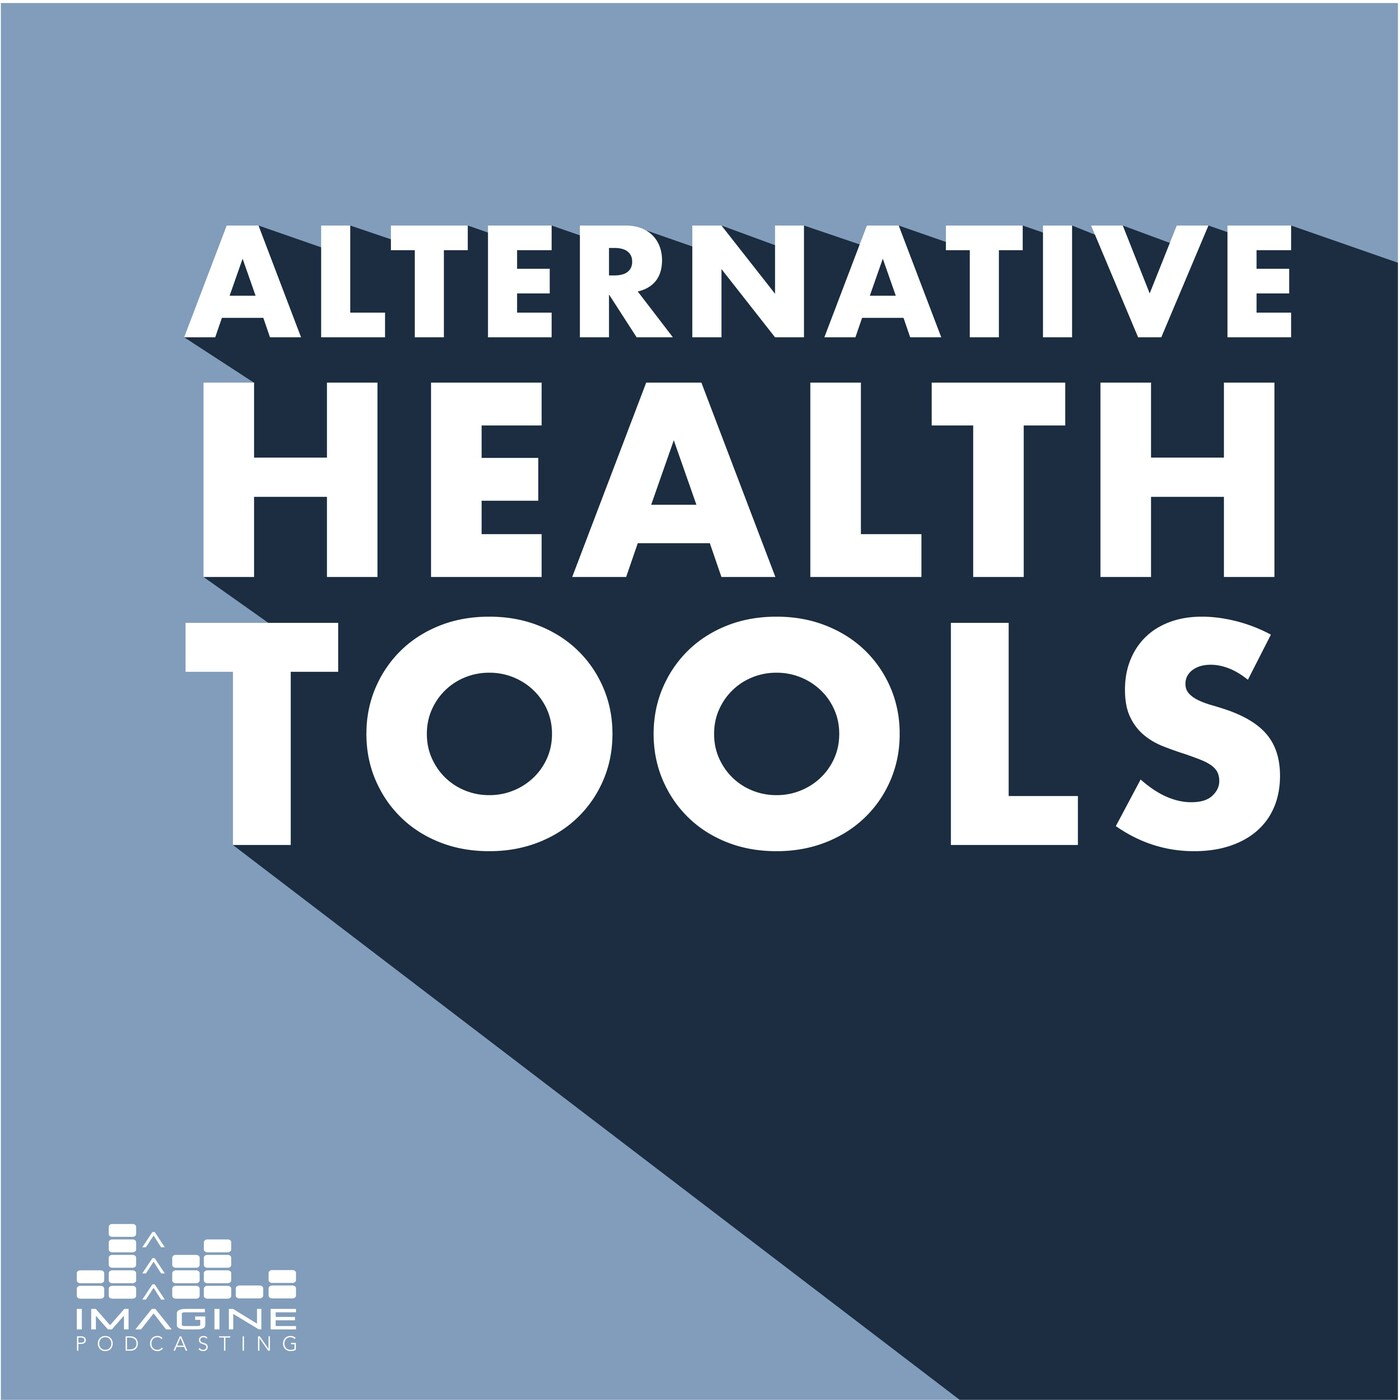 Co-hosts Lisa Thorp, Lisa Victoria, Kim Shea, and co-host/producer John Biethan discover and share new alternative health tools and resources from alternative healthcare practitioners and experts.